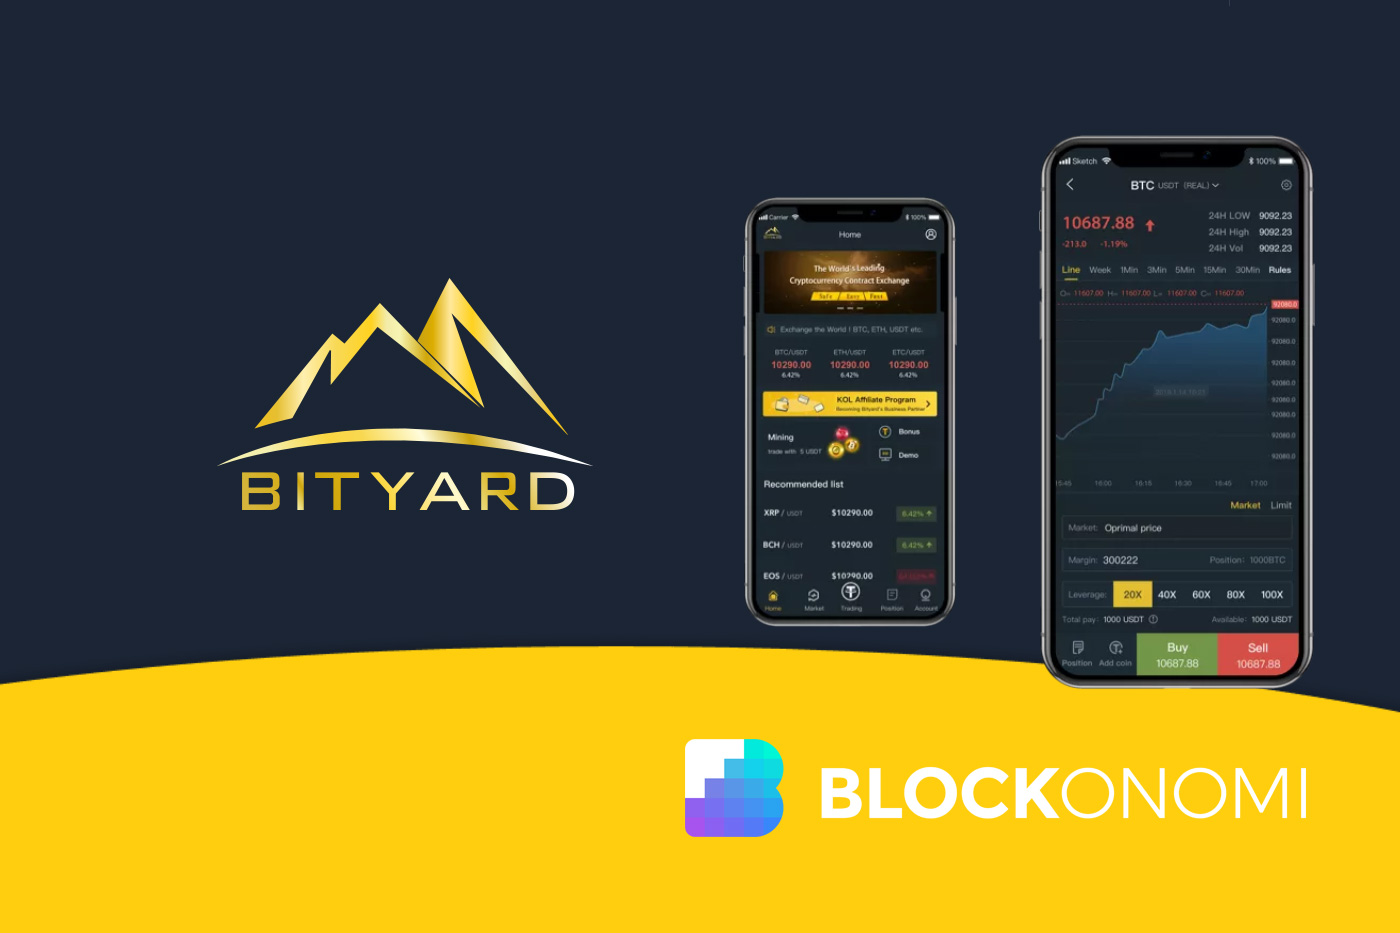 Bityard: Leveraged Crypto Futures Trading With a Regulated Exchange